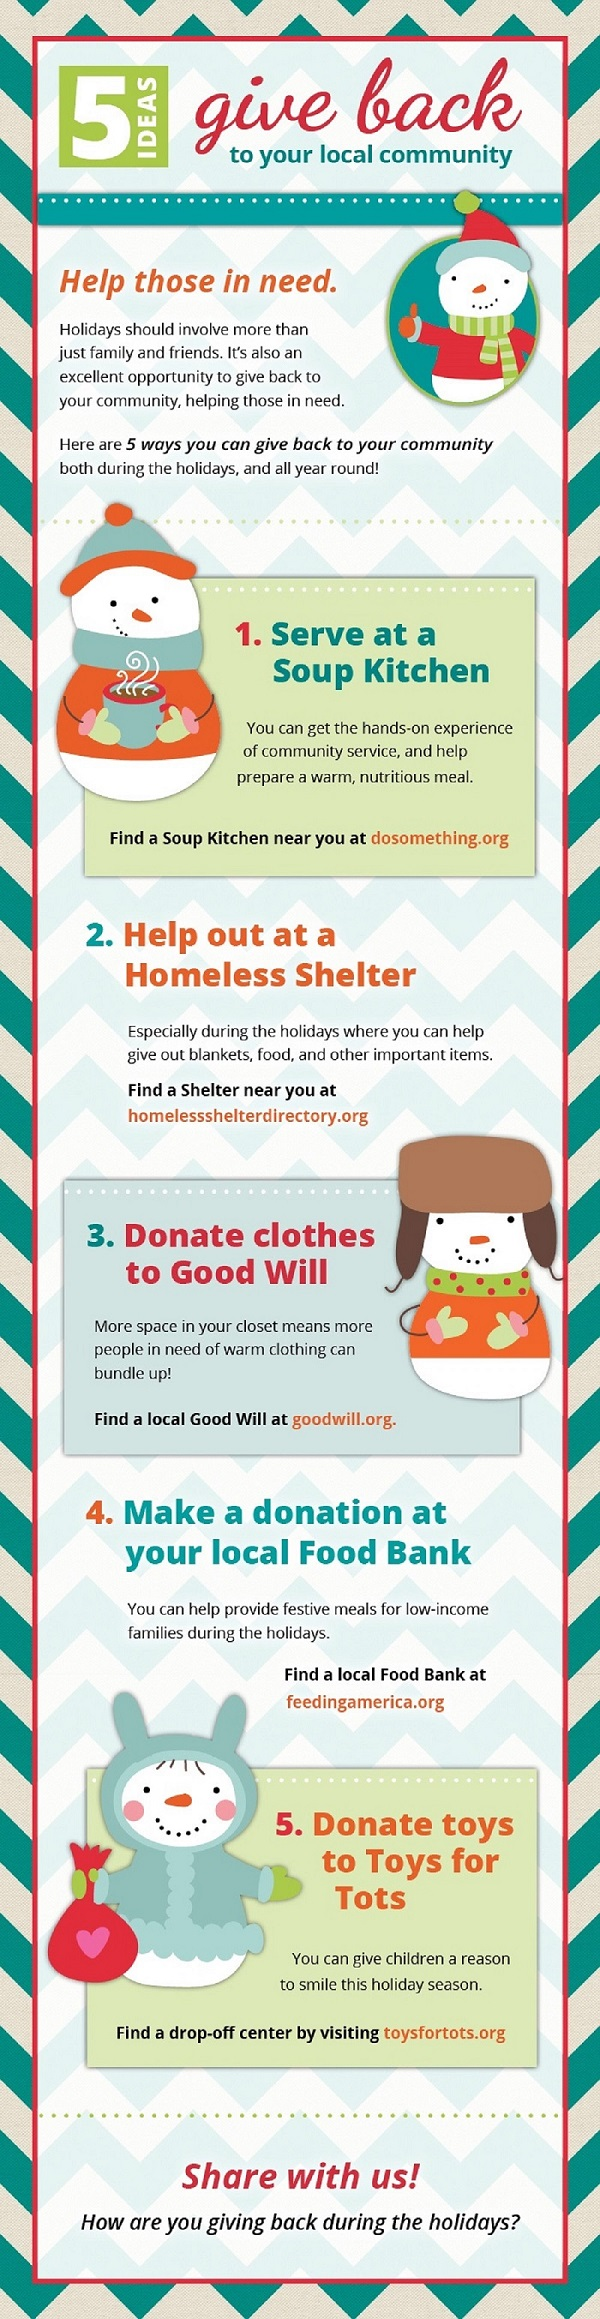 holidayinfographic_giveback_web.jpg